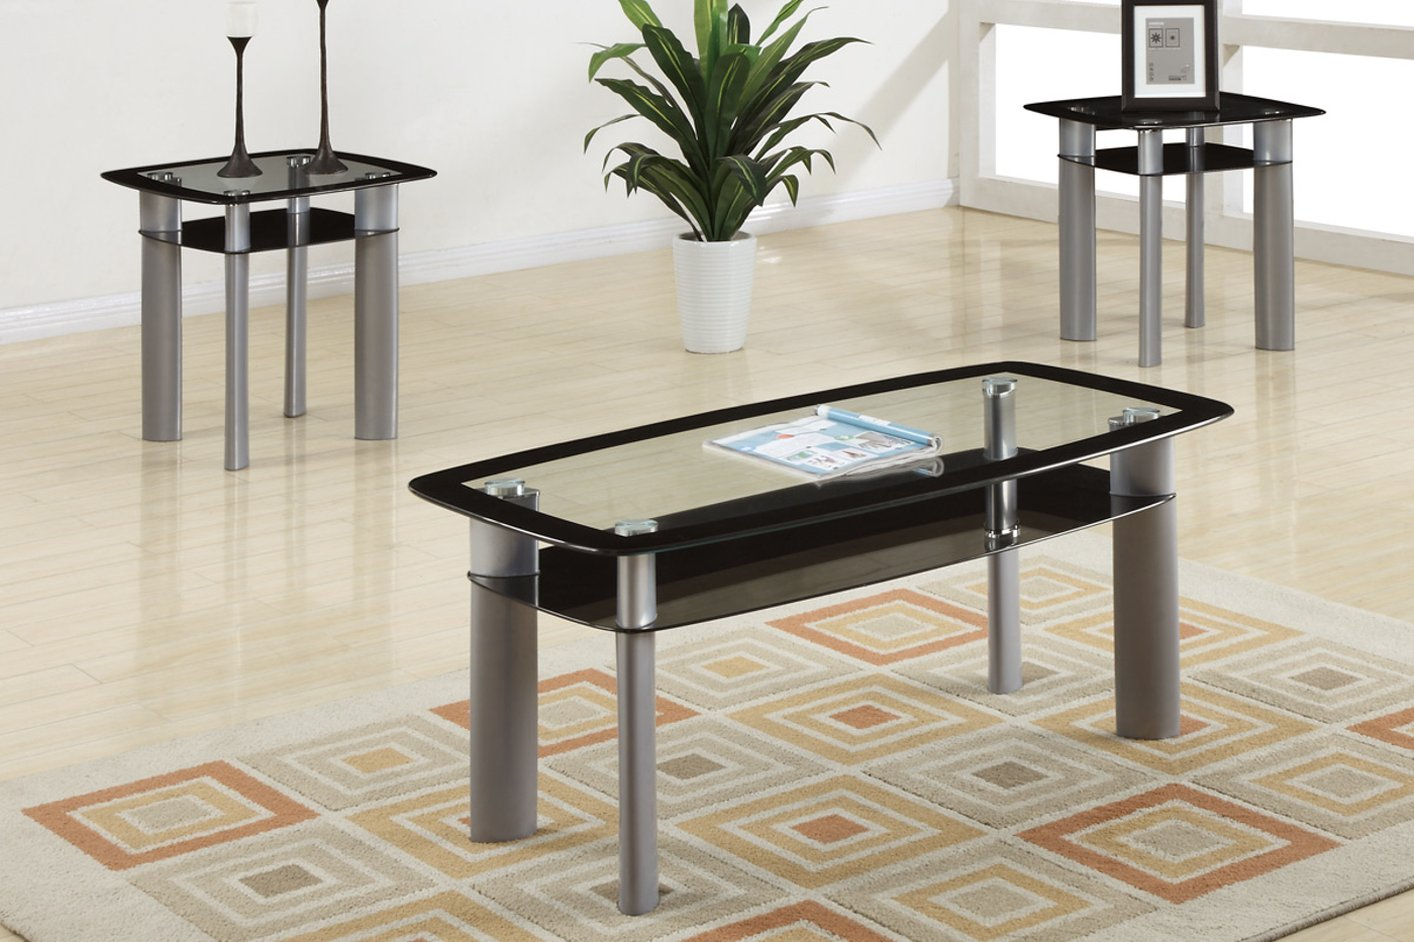 Poundex F3091 Black Glass Coffee Table Set Steal A Sofa Furniture Outlet Los Angeles Ca